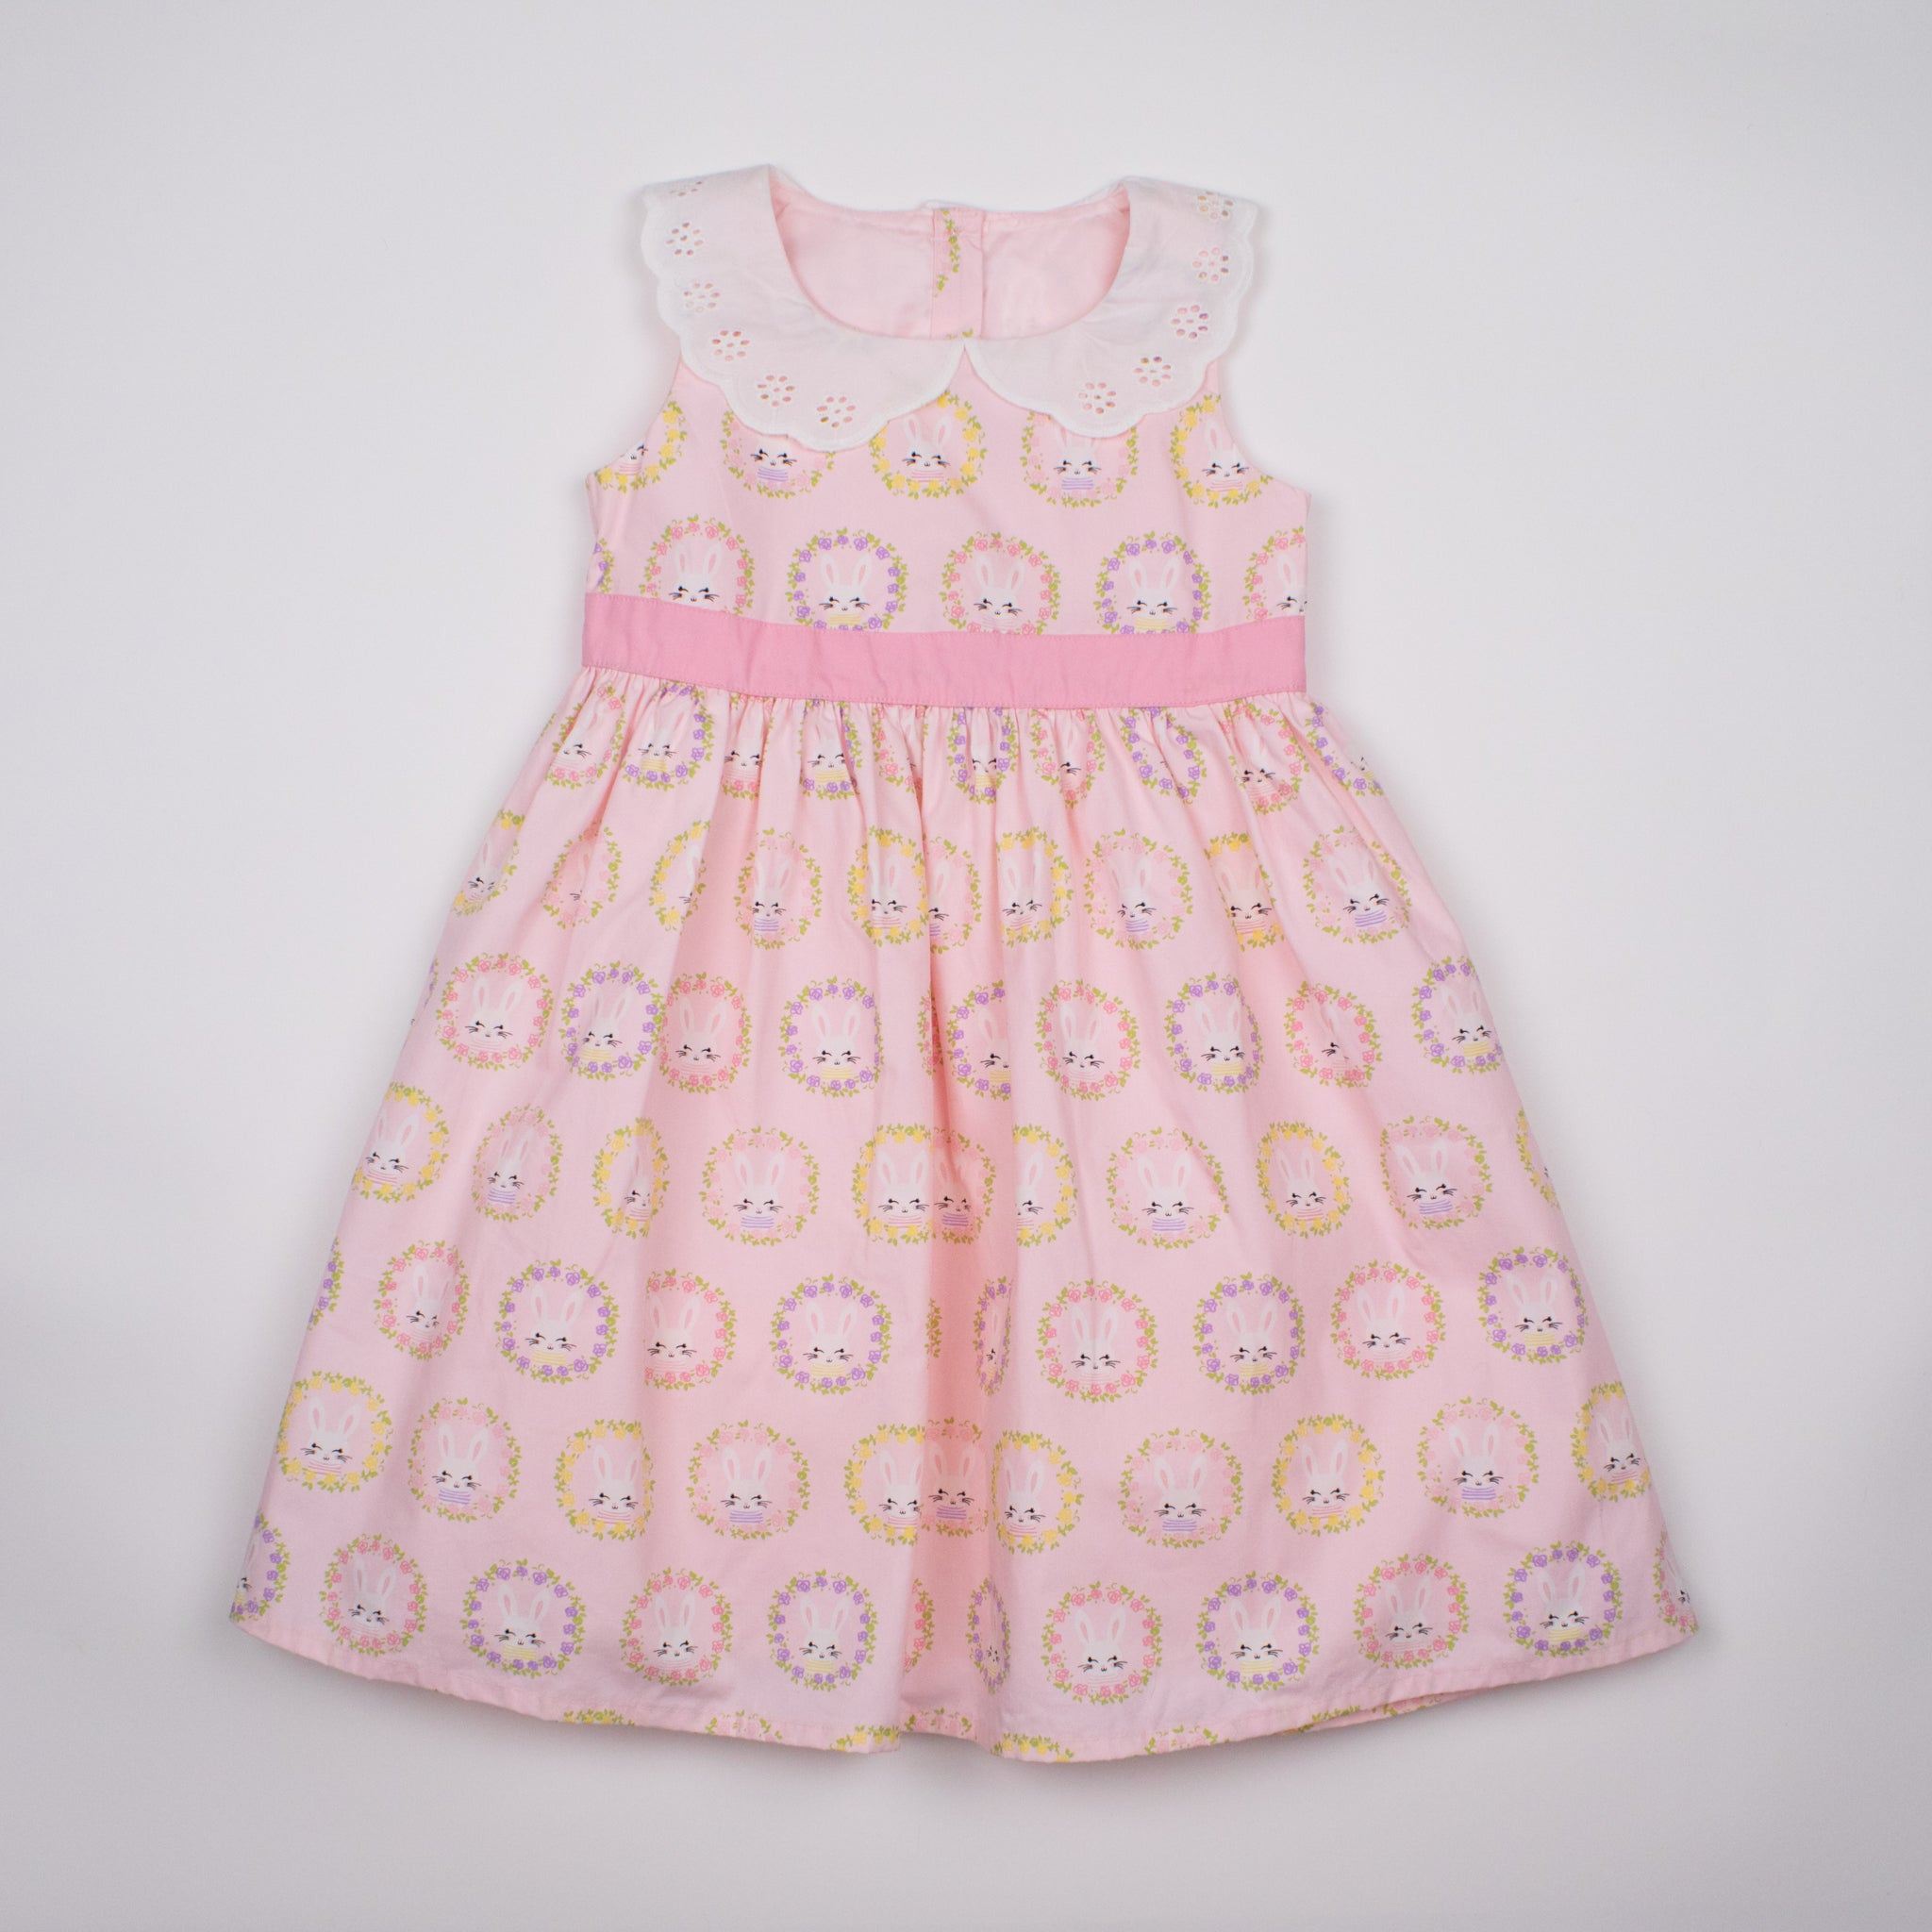 Pink Bunny Sleeveless Dress 1-5Y